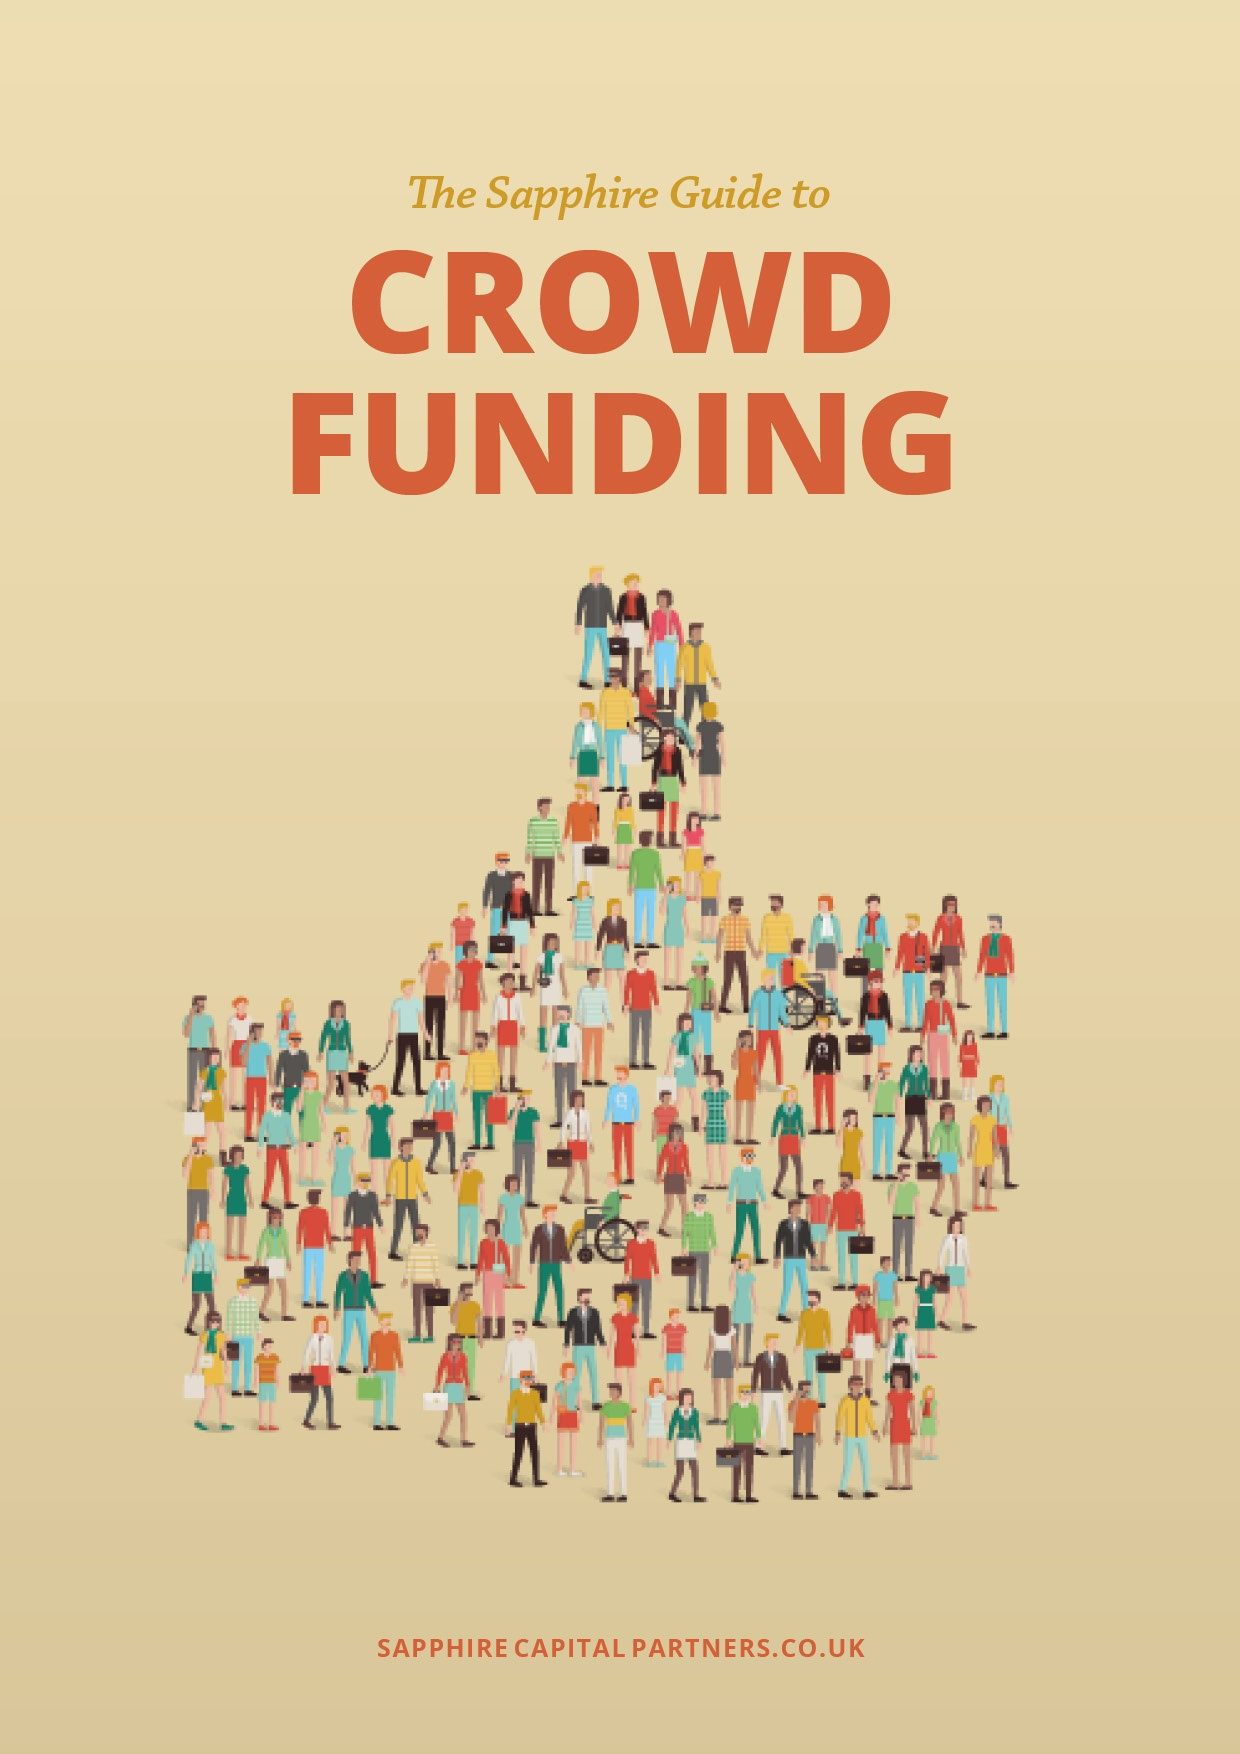 The Sapphire Guide to Crowdfunding